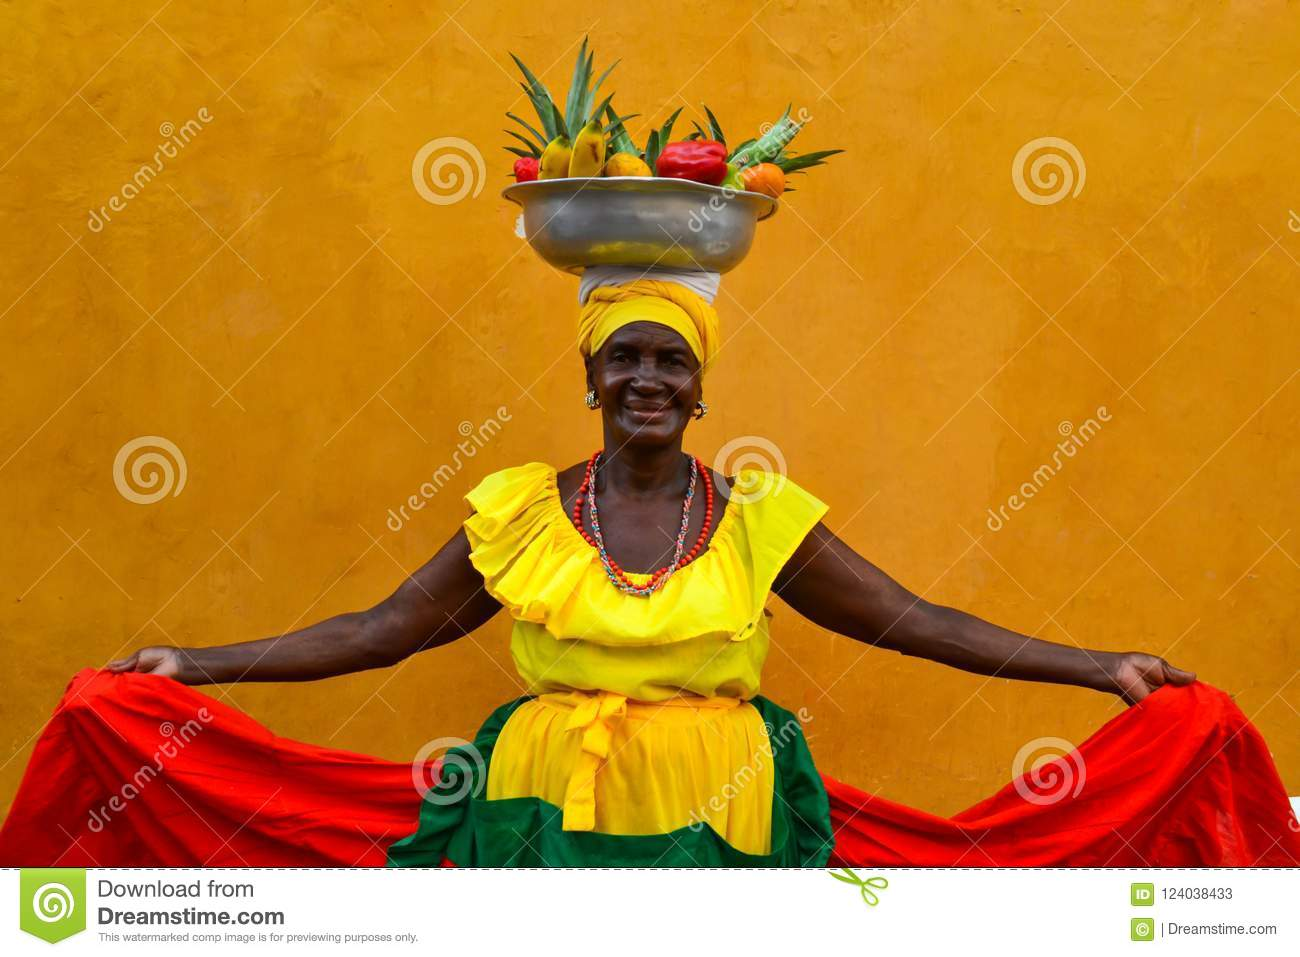 CARTAGENA DE INDIAS, COLOMBIA - July 27, 2017: Beautiful smiling woman wearing traditional costume sell fruits in the center of Ca